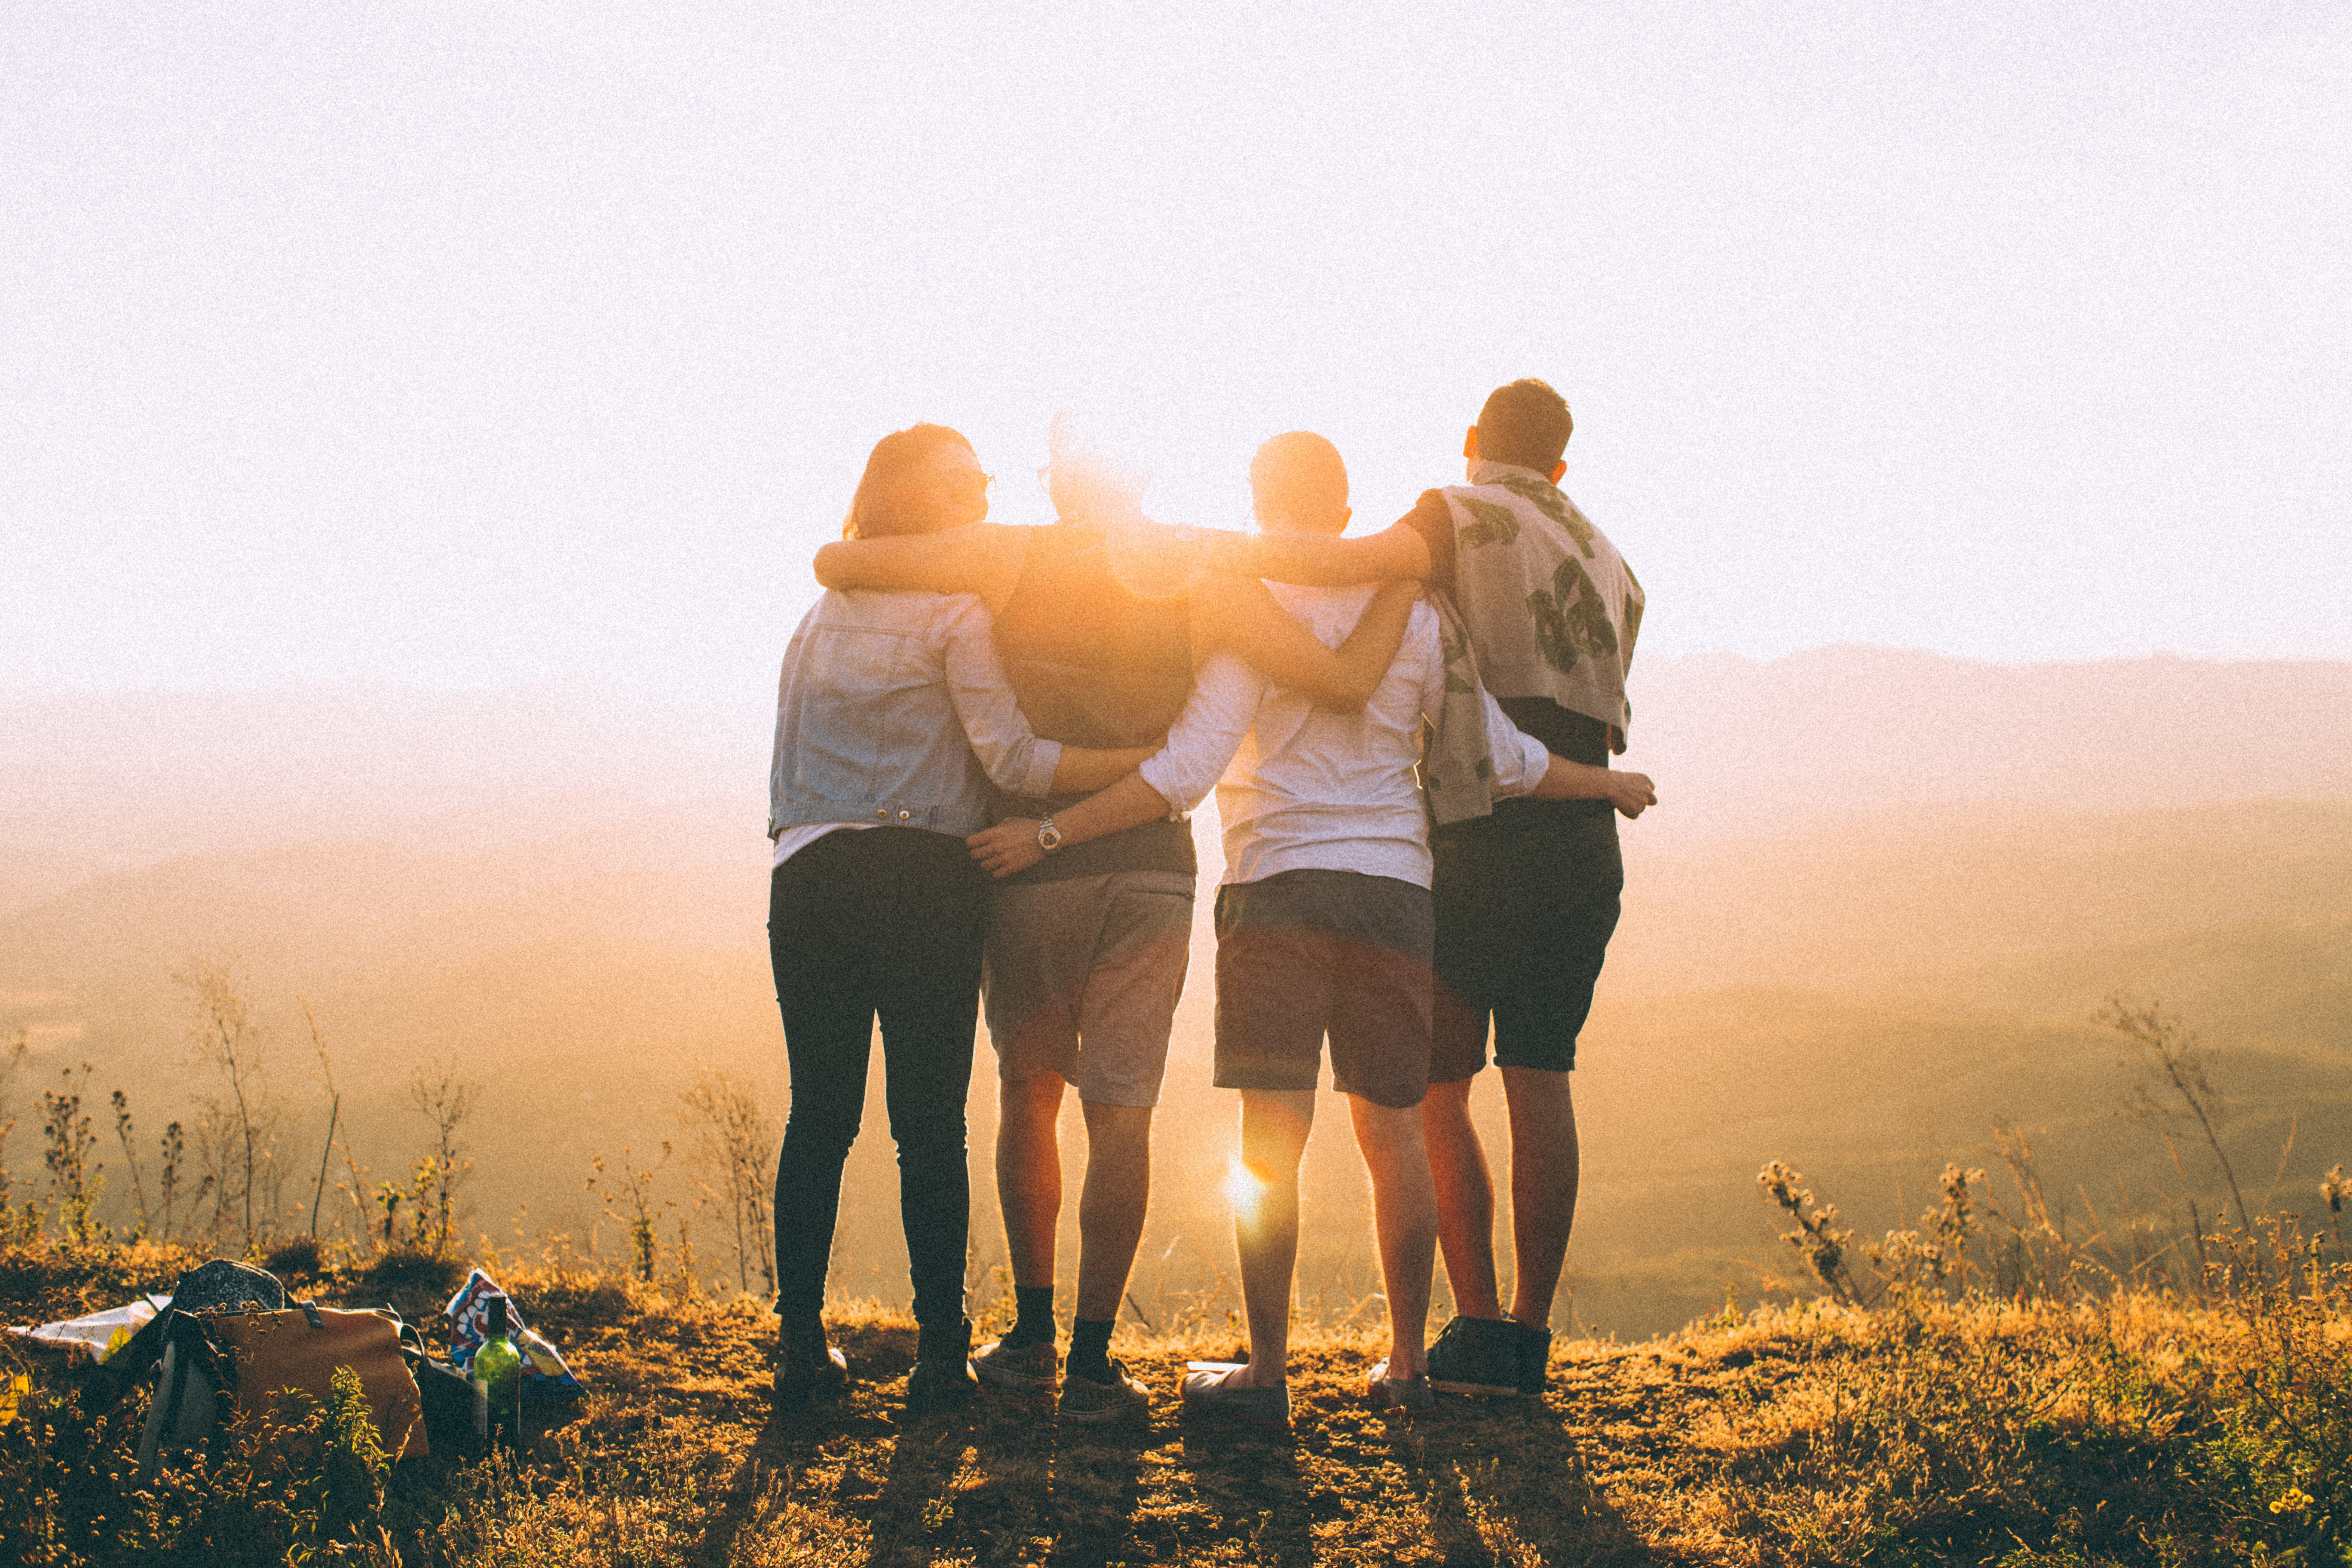 Four people hug after completing a hike.